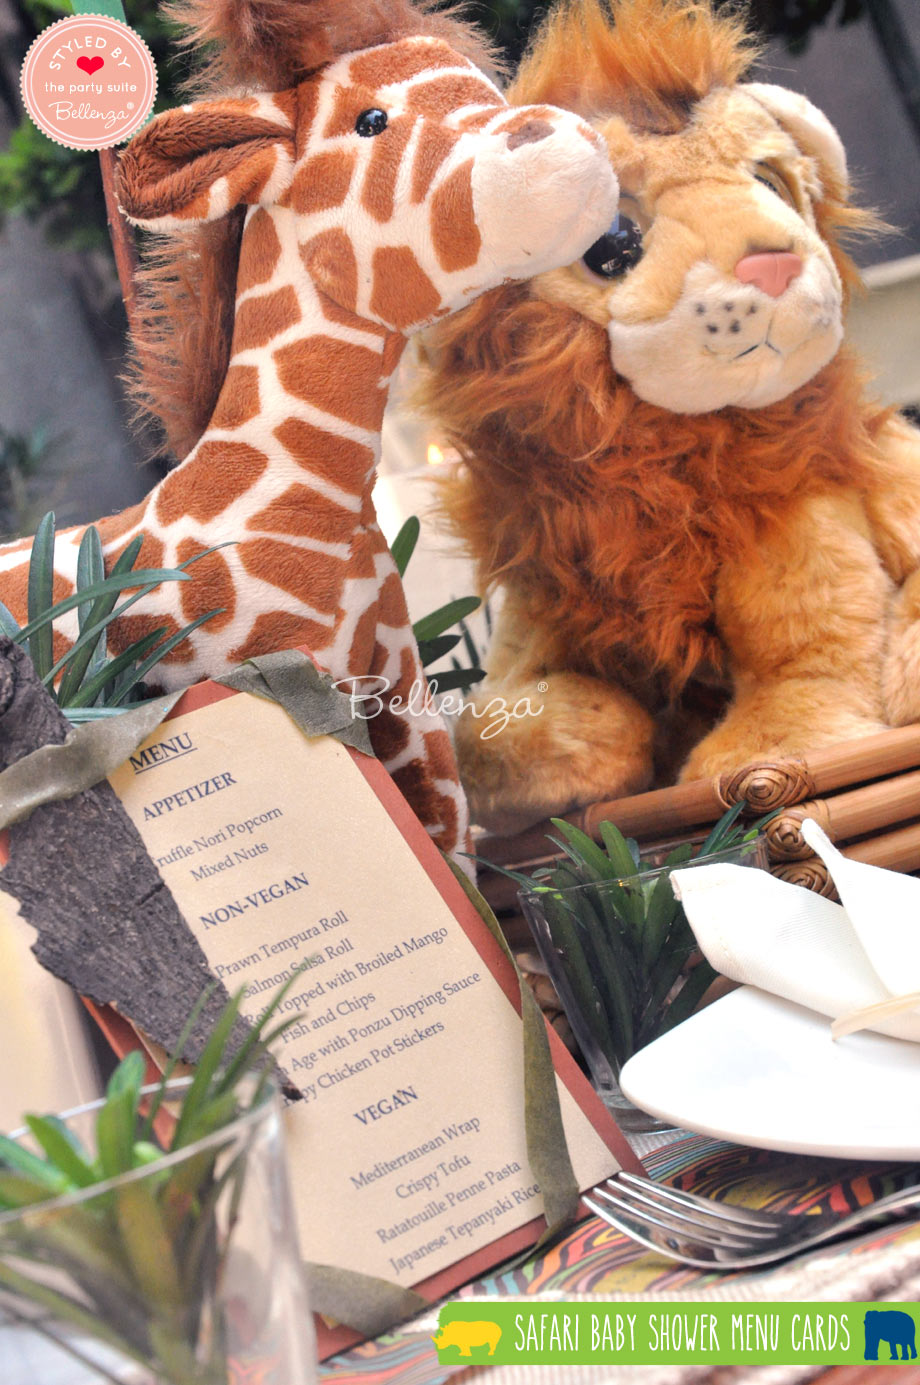 Safari menu card diy with stuffed animals as decorations.